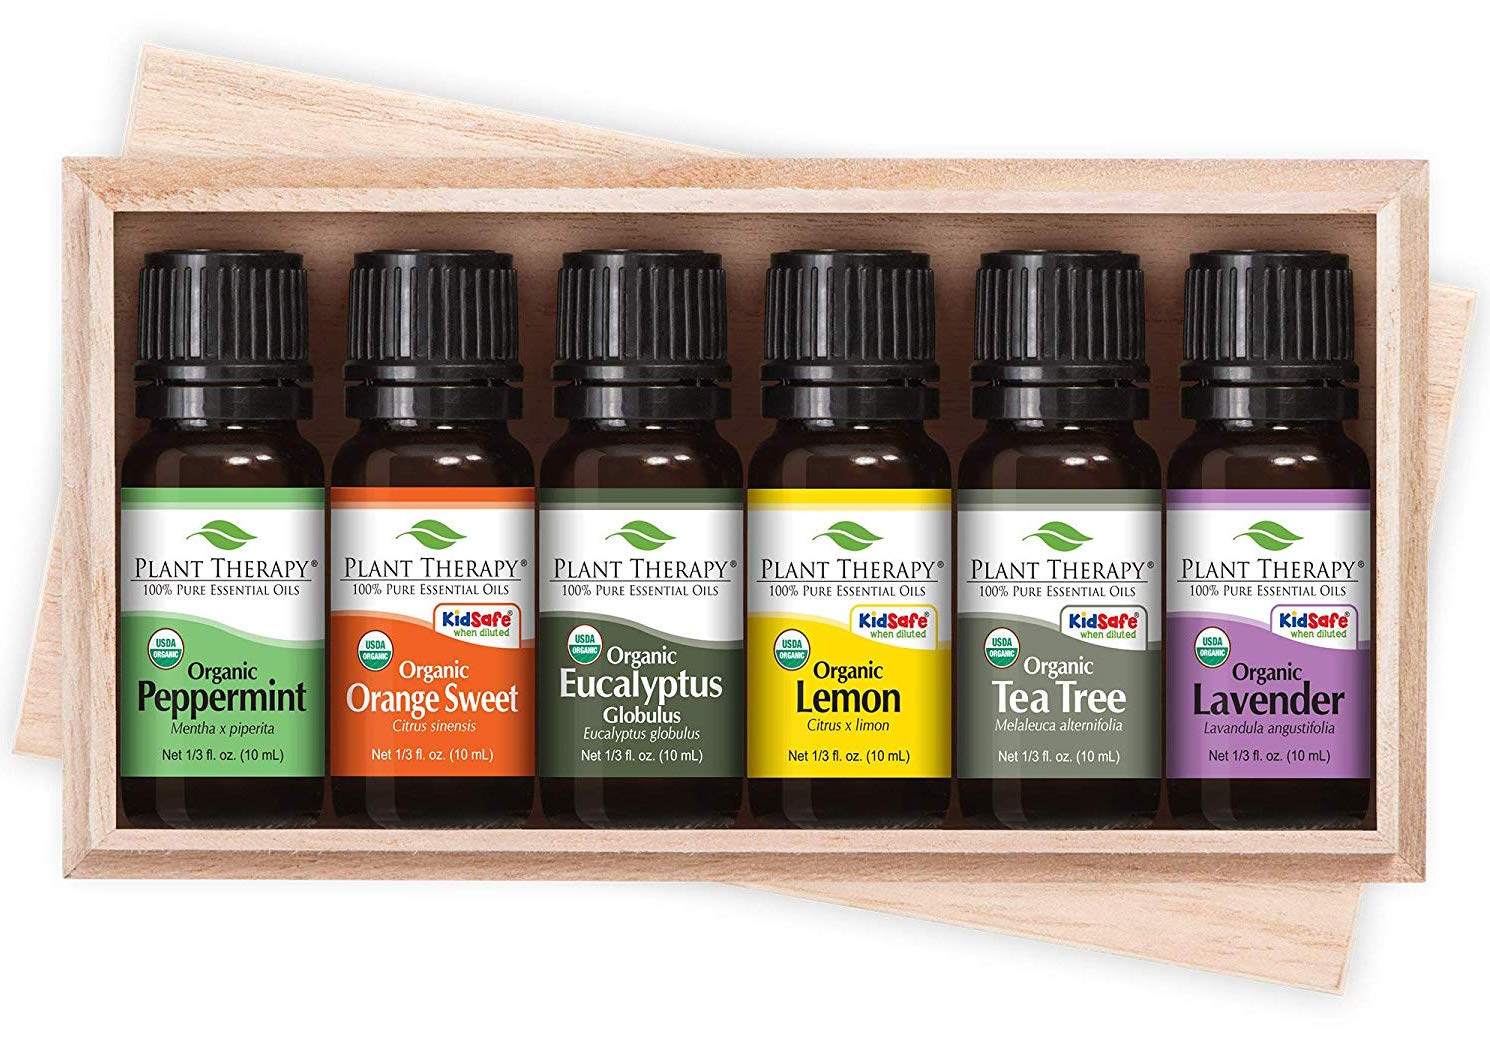 A stock photo of a wooden box that contains six jars of essential oils. From left to right the essential oils are peppermint, orange sweet, eucalyptus, lemon, tea tree, and lavender.